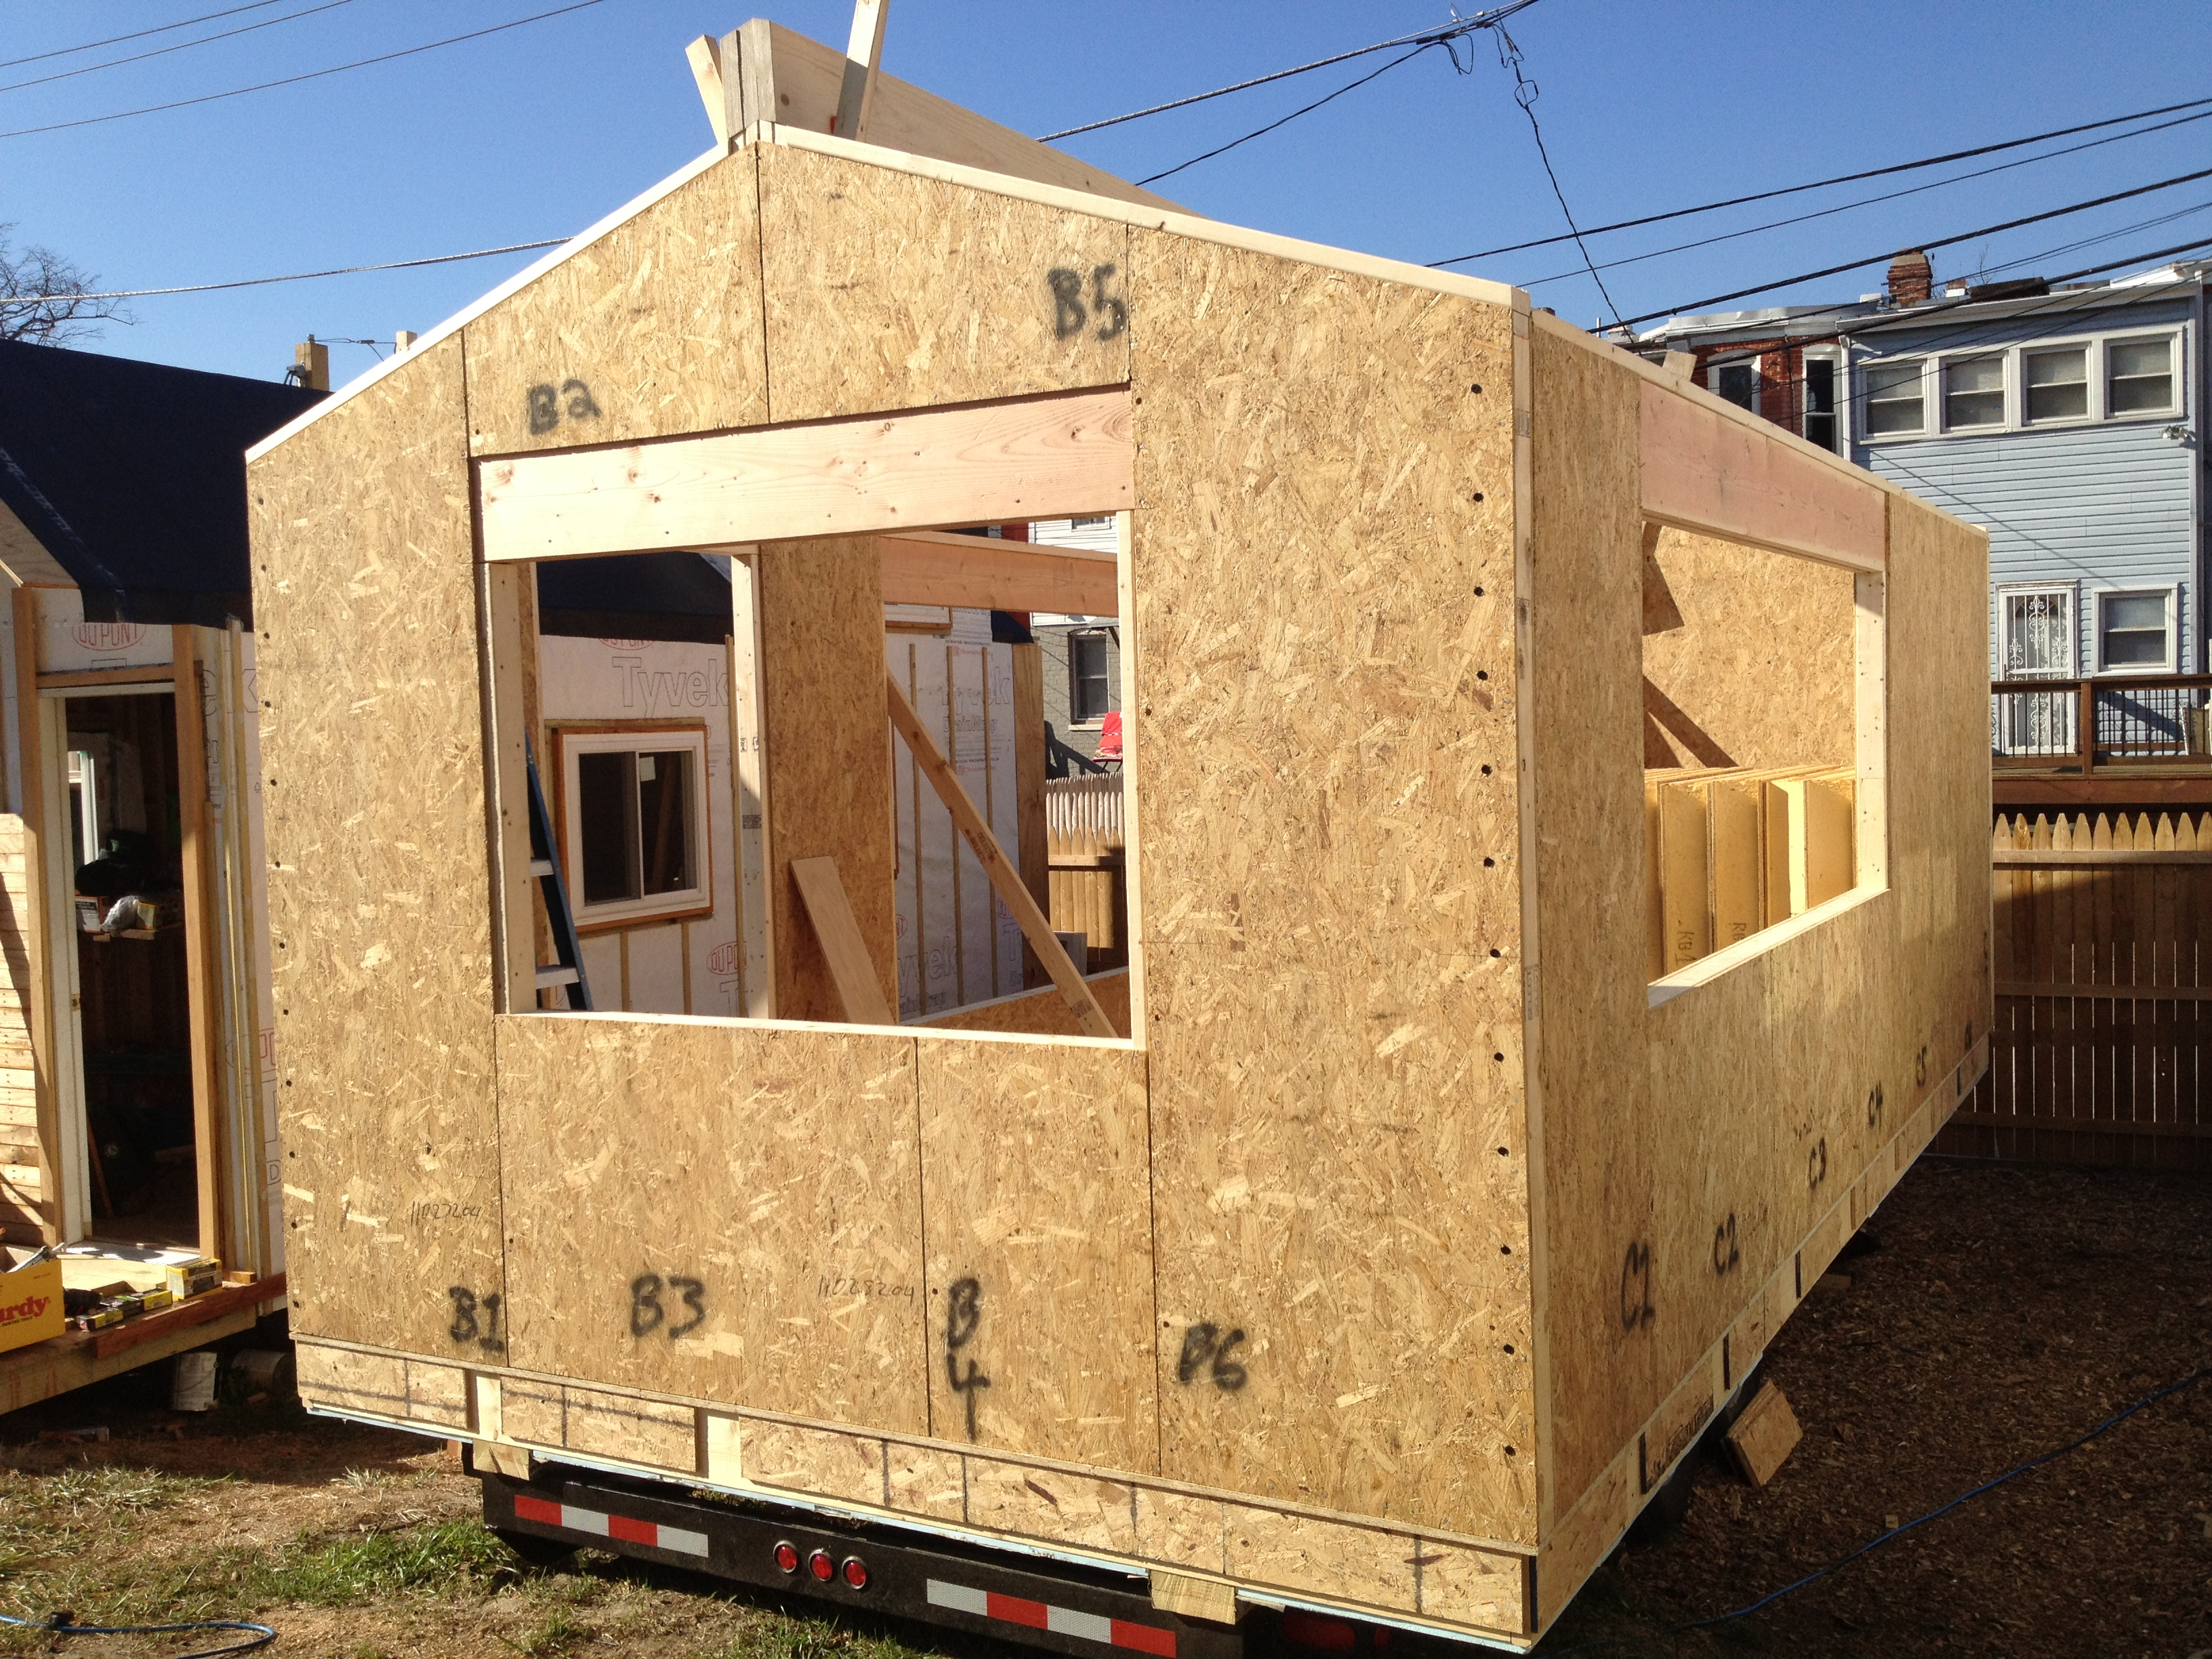 Minim house construction starts micro showcase for Building a house with sip panels